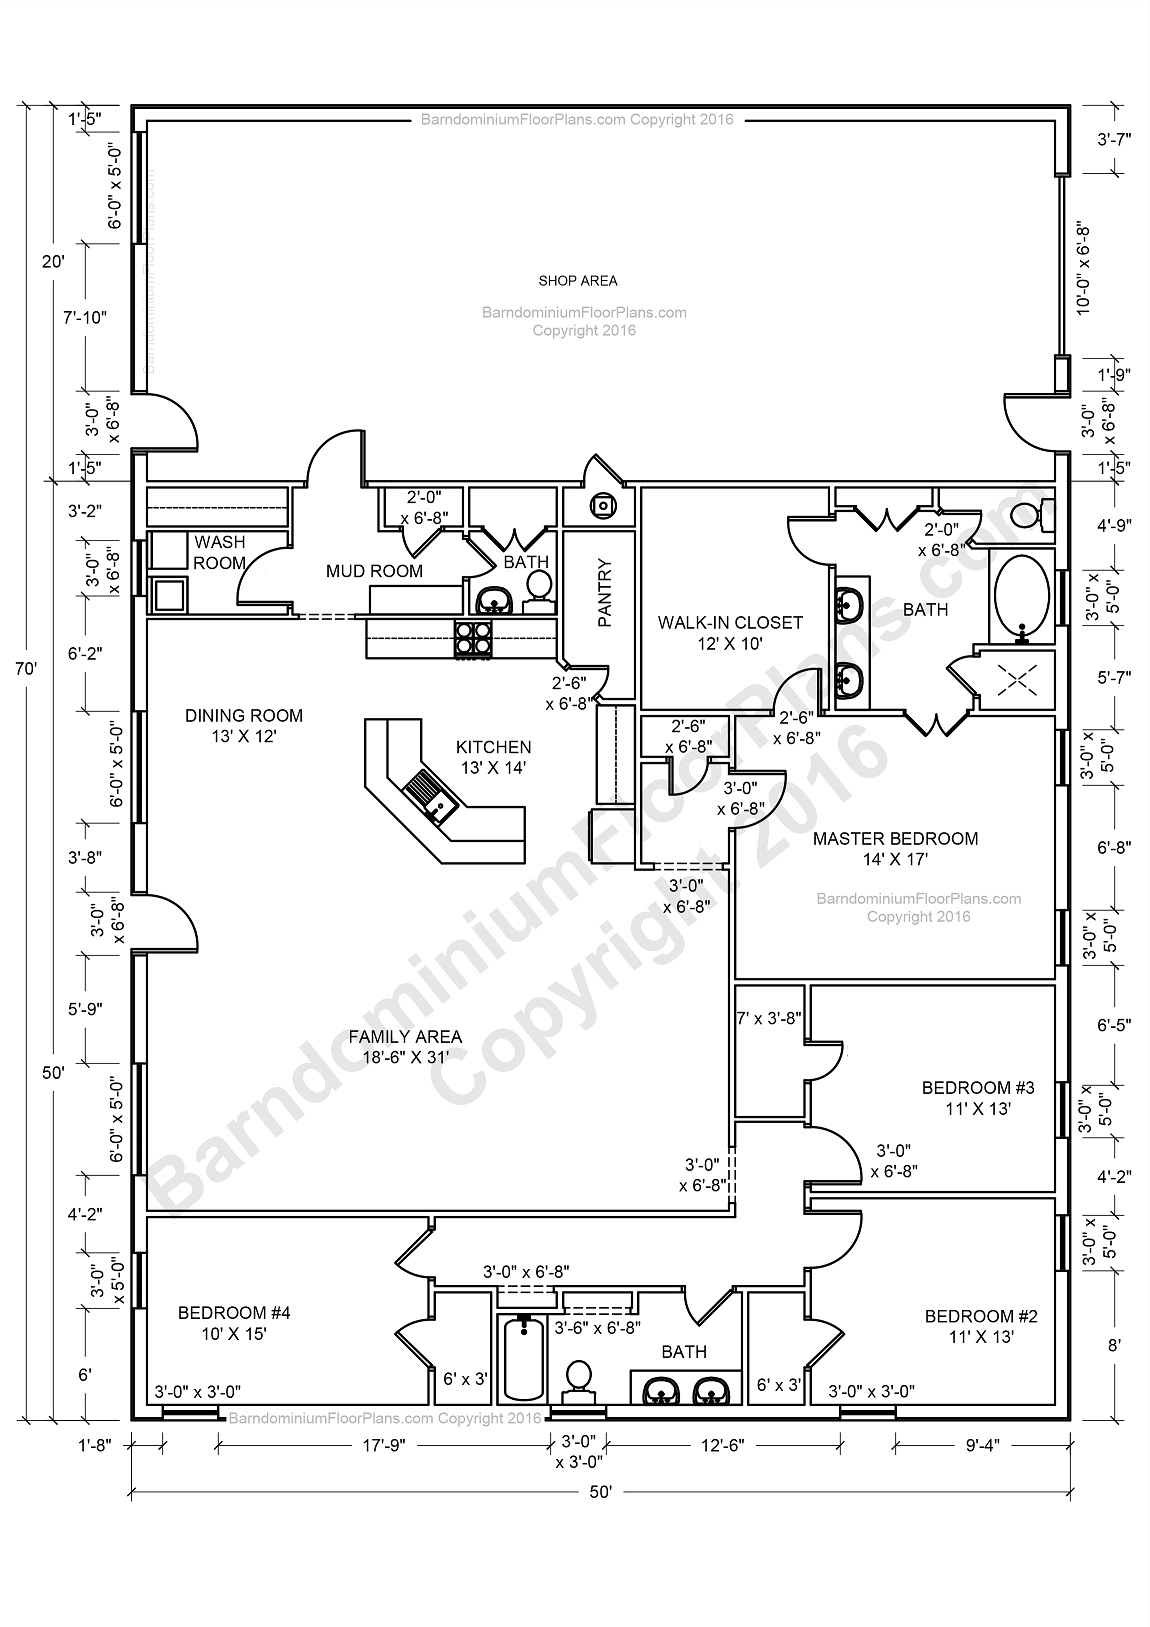 Barndominium floor plans barndominium floor plans 1 800 for Pole shed house plans